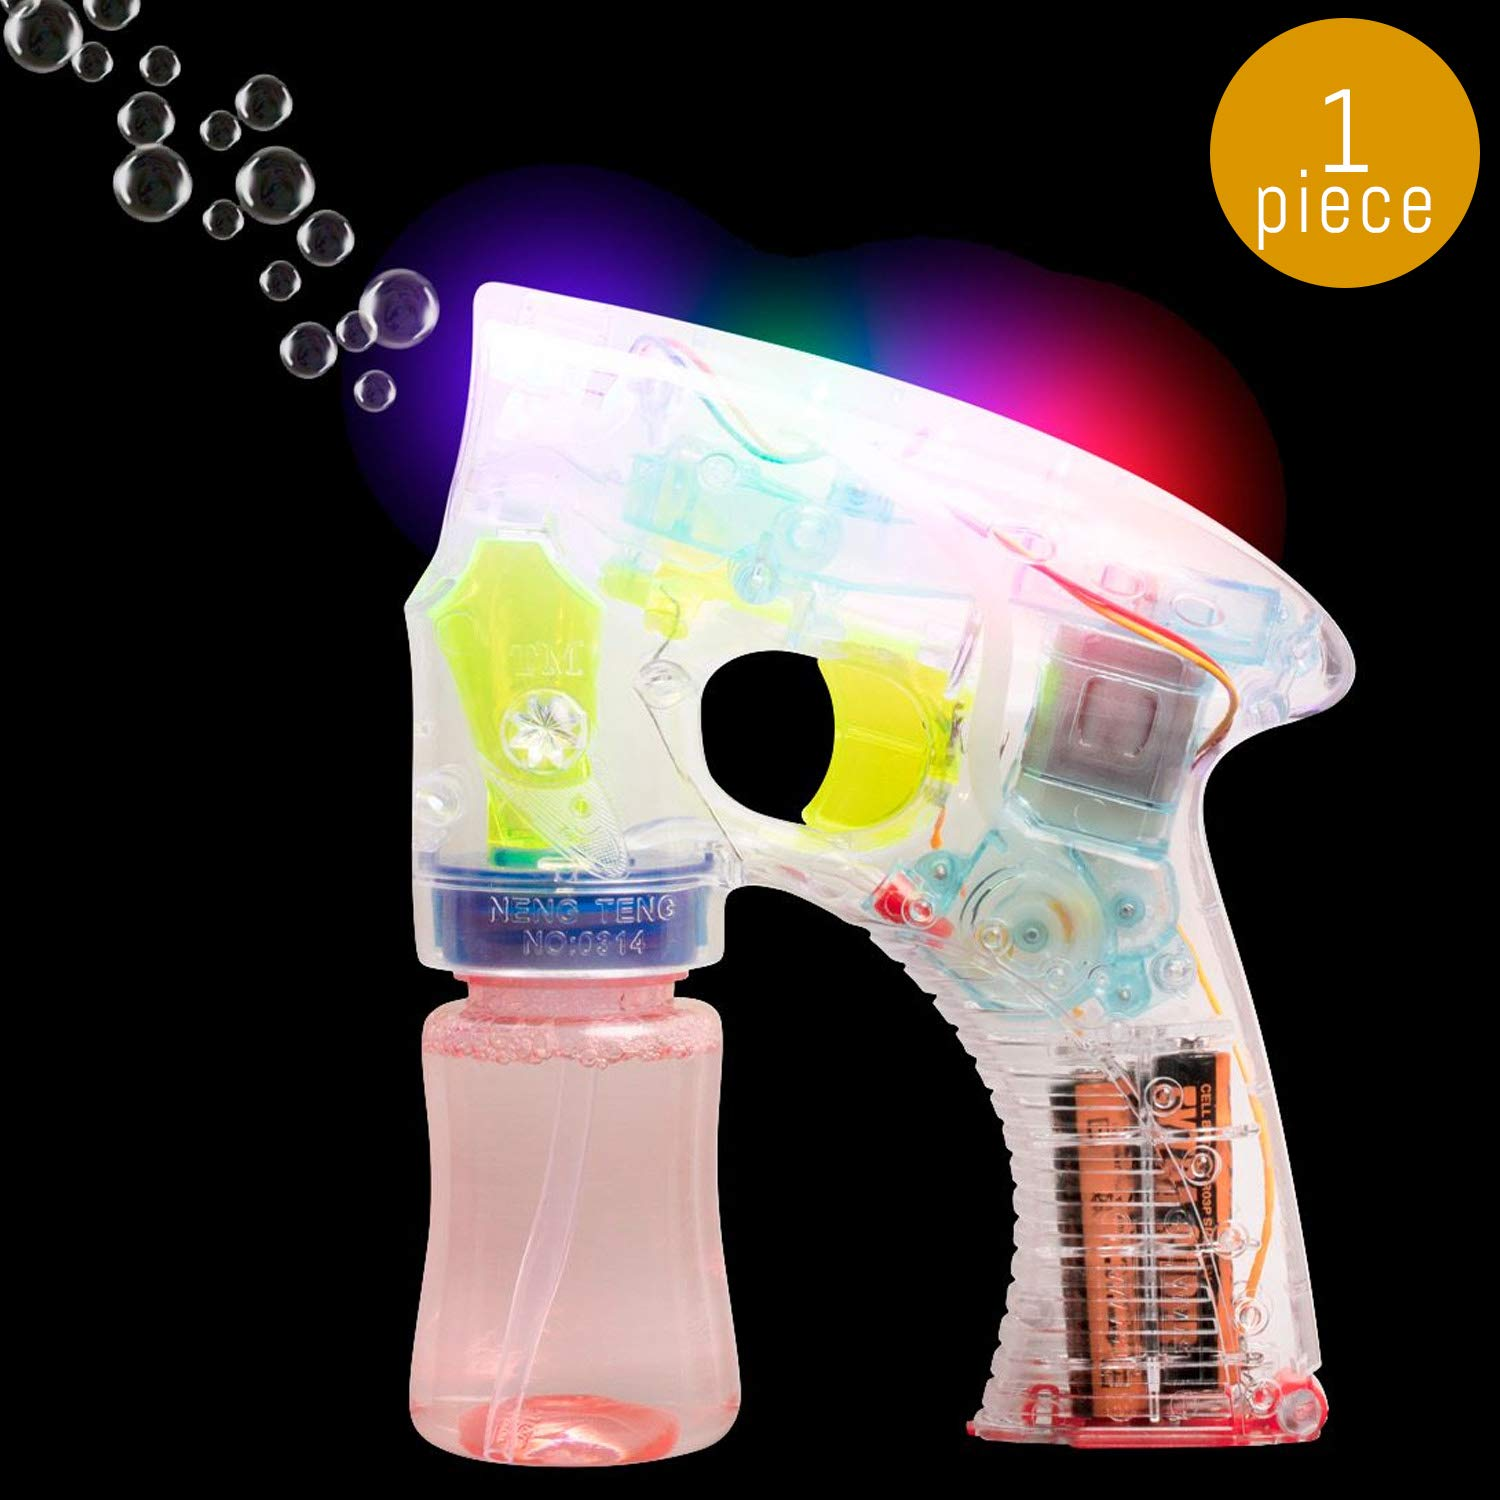 Lumistick Light-Up Bubble Blaster Gun | Transparent Glowing LED Blower Machine | Ultra Bright Glinting Air Bubbles Wand | Gleaming Summer Games Toy (1 Gun)